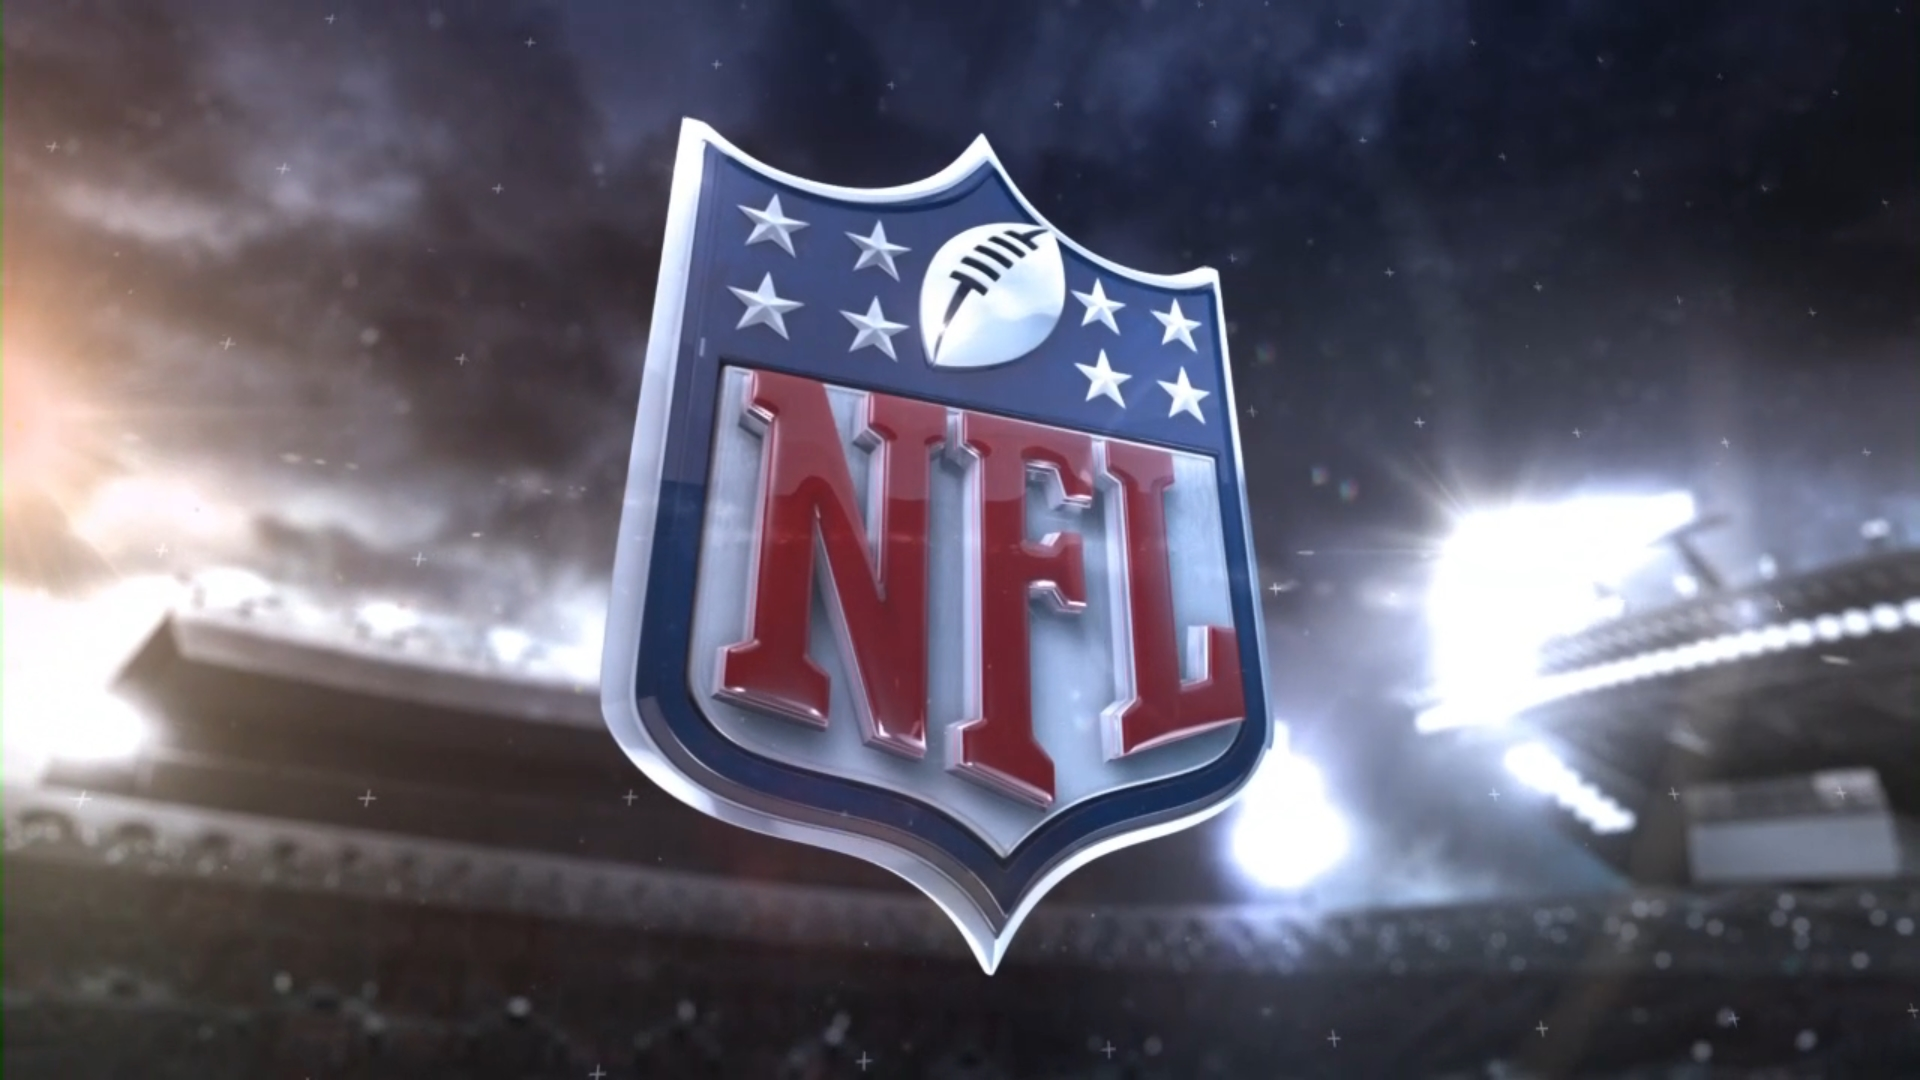 The 2018 NFL Draft – Live TV Coverage on Sky Sports